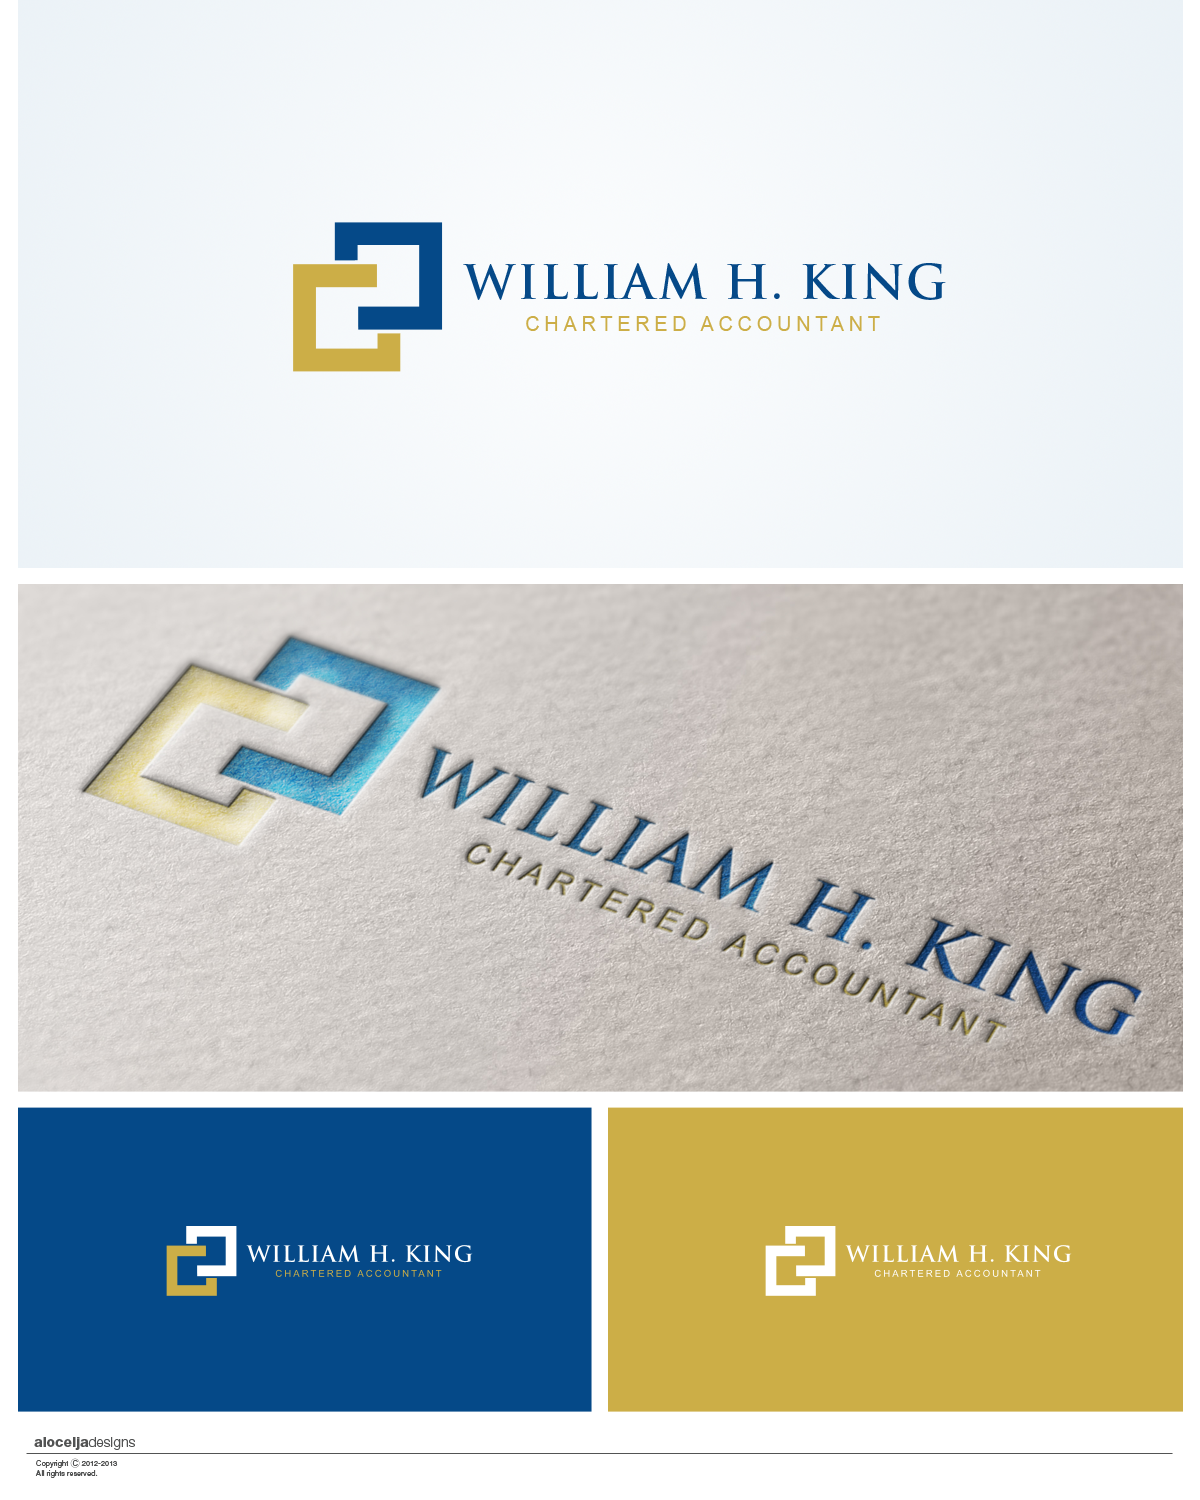 Logo Design by alocelja - Entry No. 161 in the Logo Design Contest New Logo Design for William H. King, Chartered Accountant.